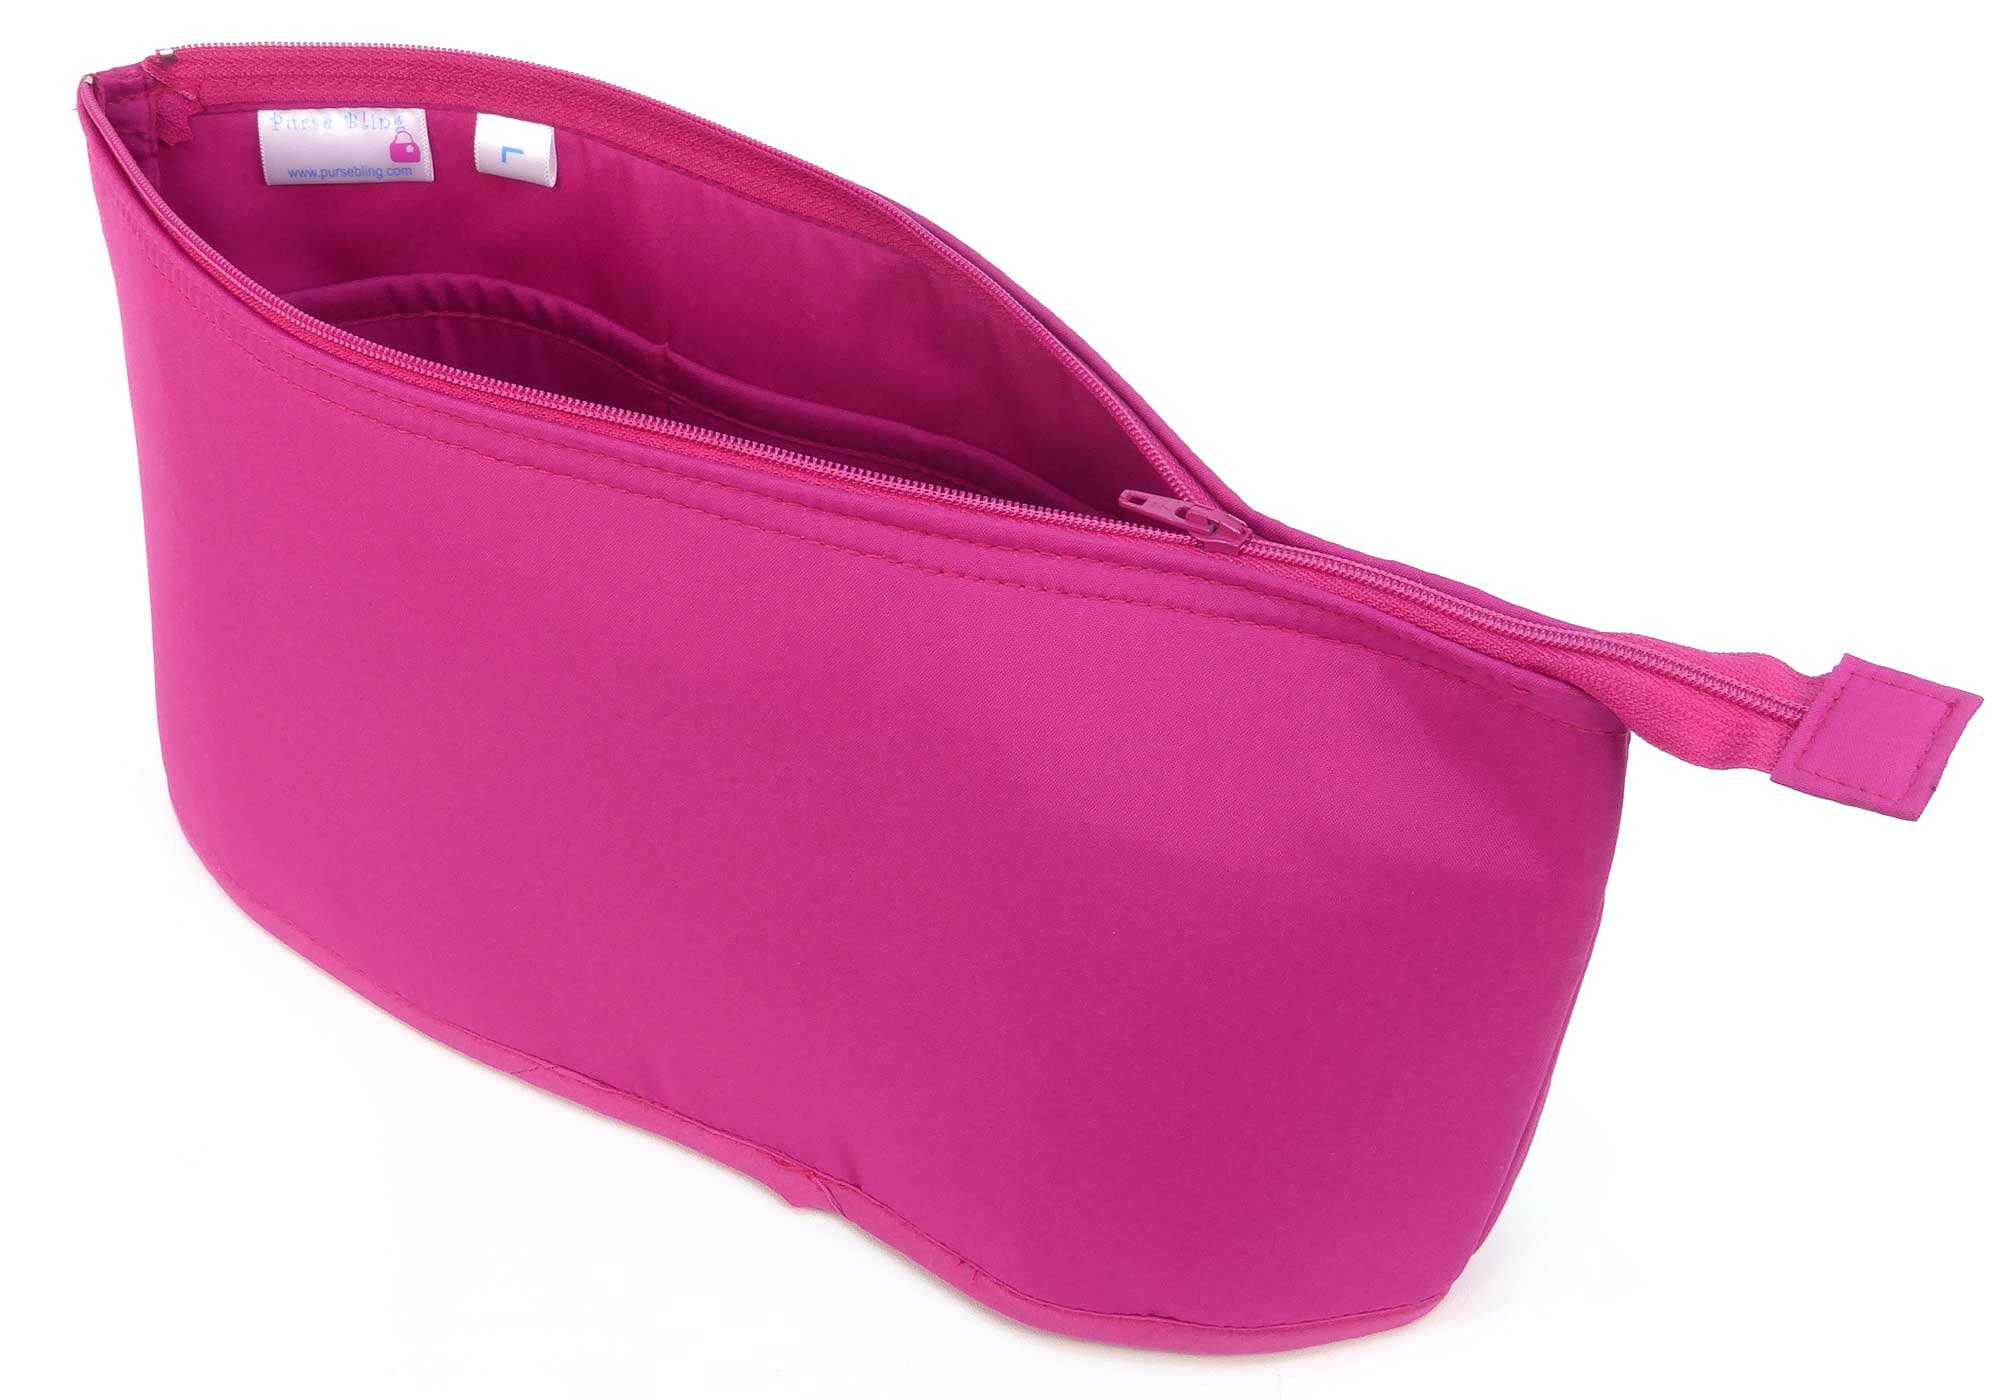 Purse Bling Purse To Go Style Organizer Insert with Zipper - Jumbo-Hot Pink